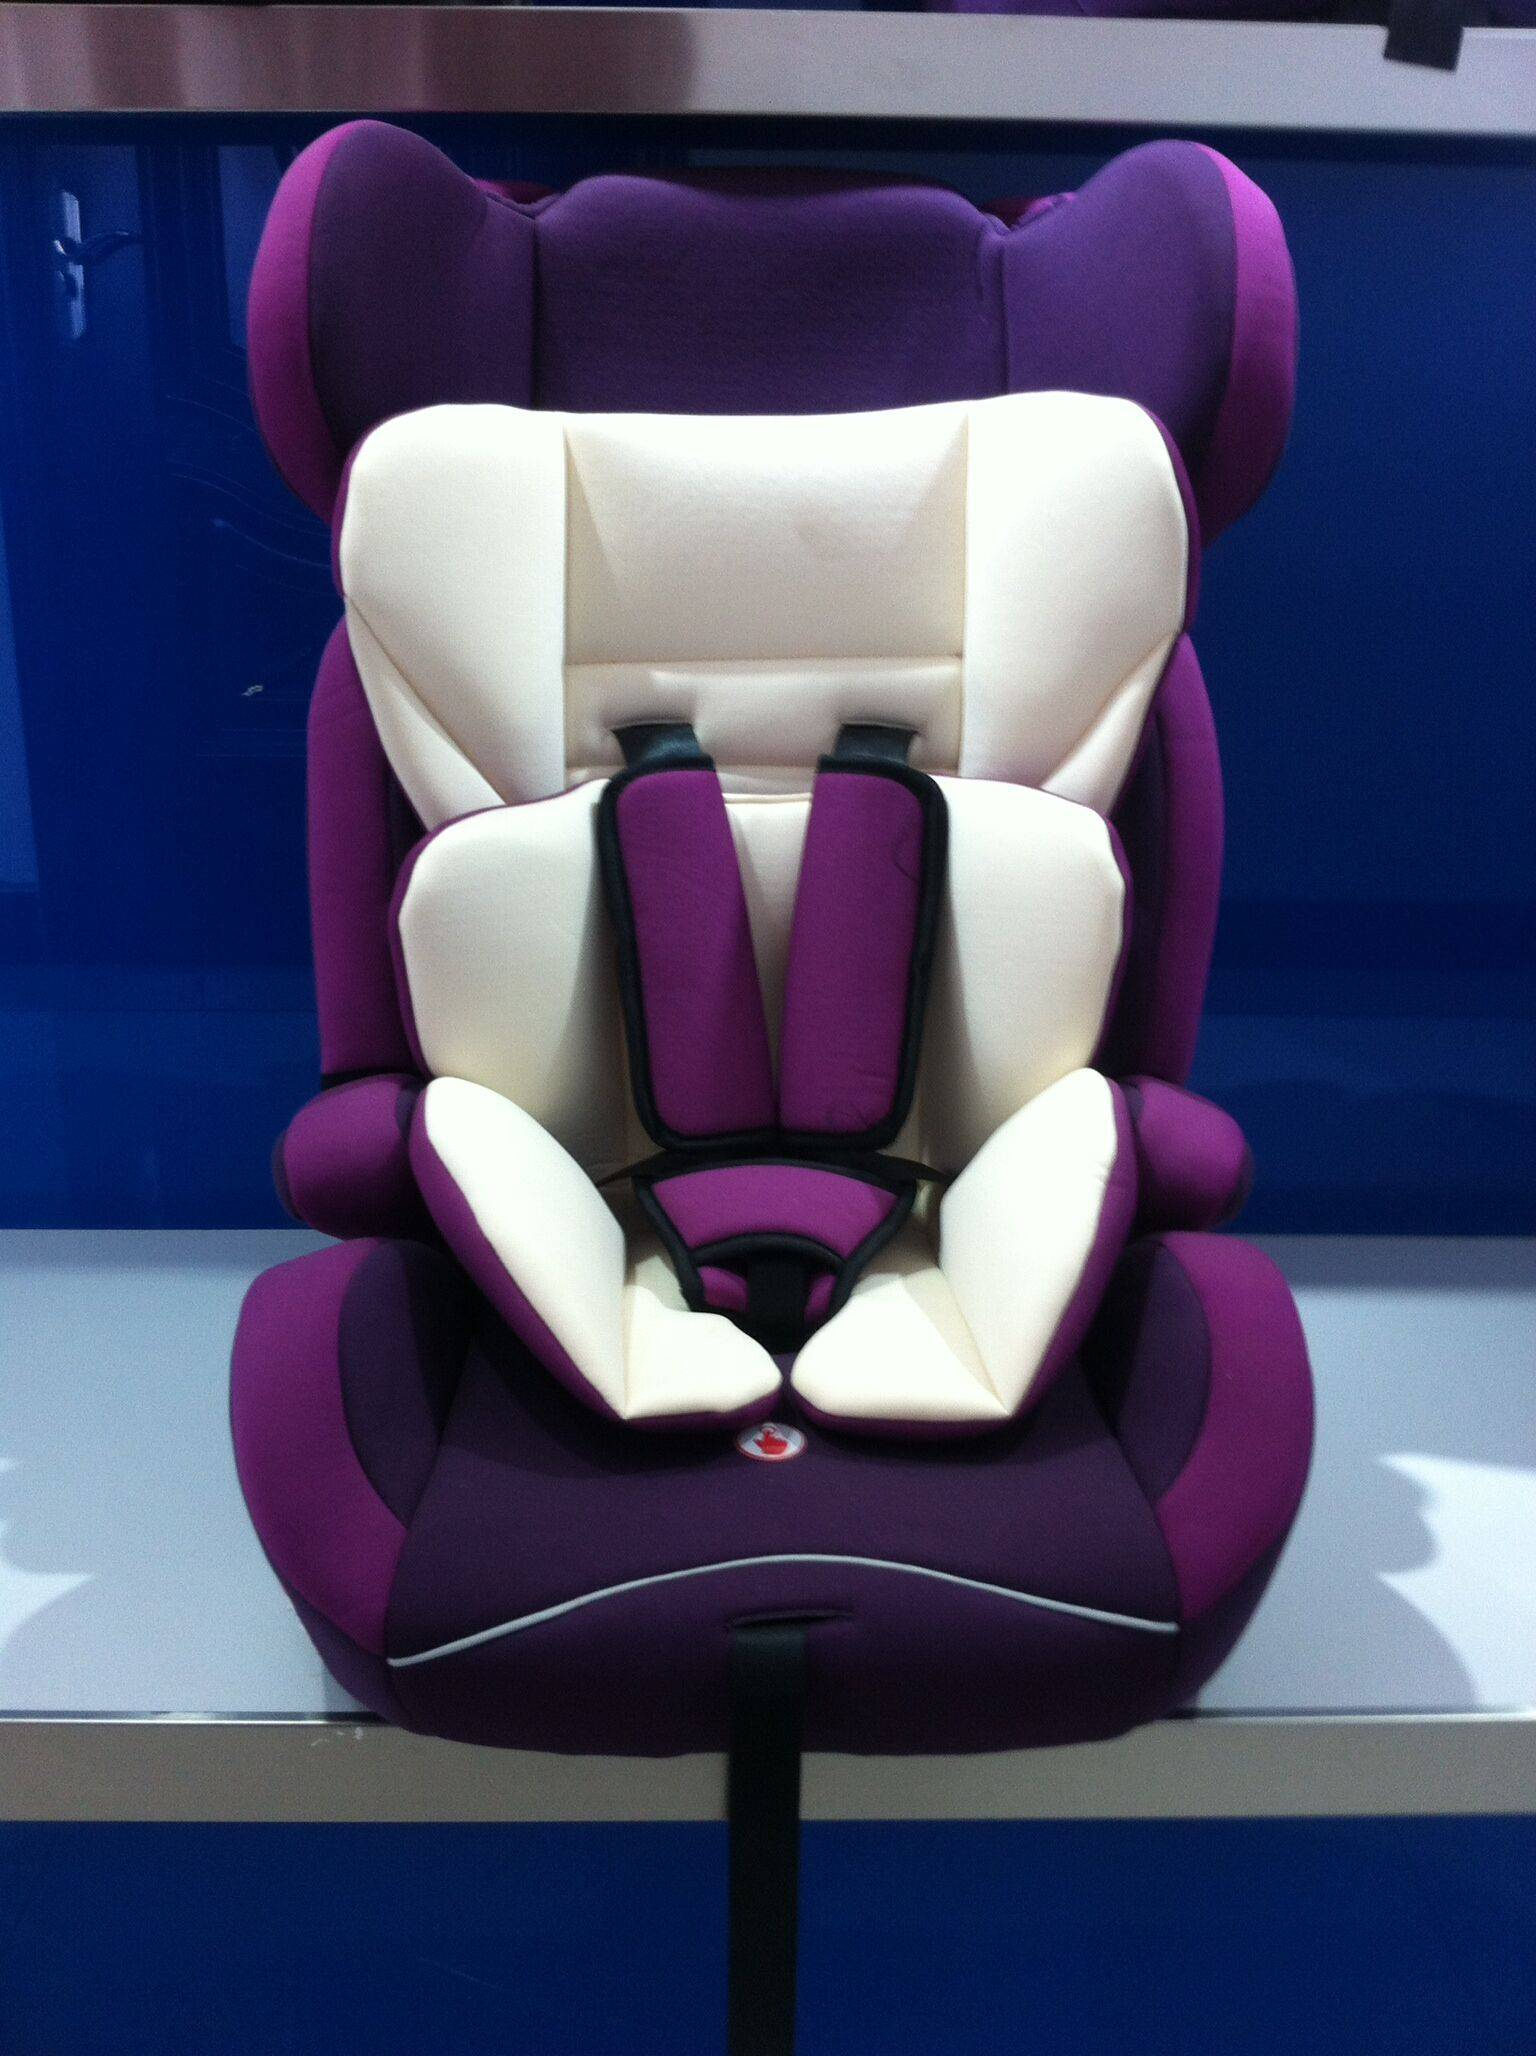 CAR CHILD SAFETY SEATS 9months to 12 years old